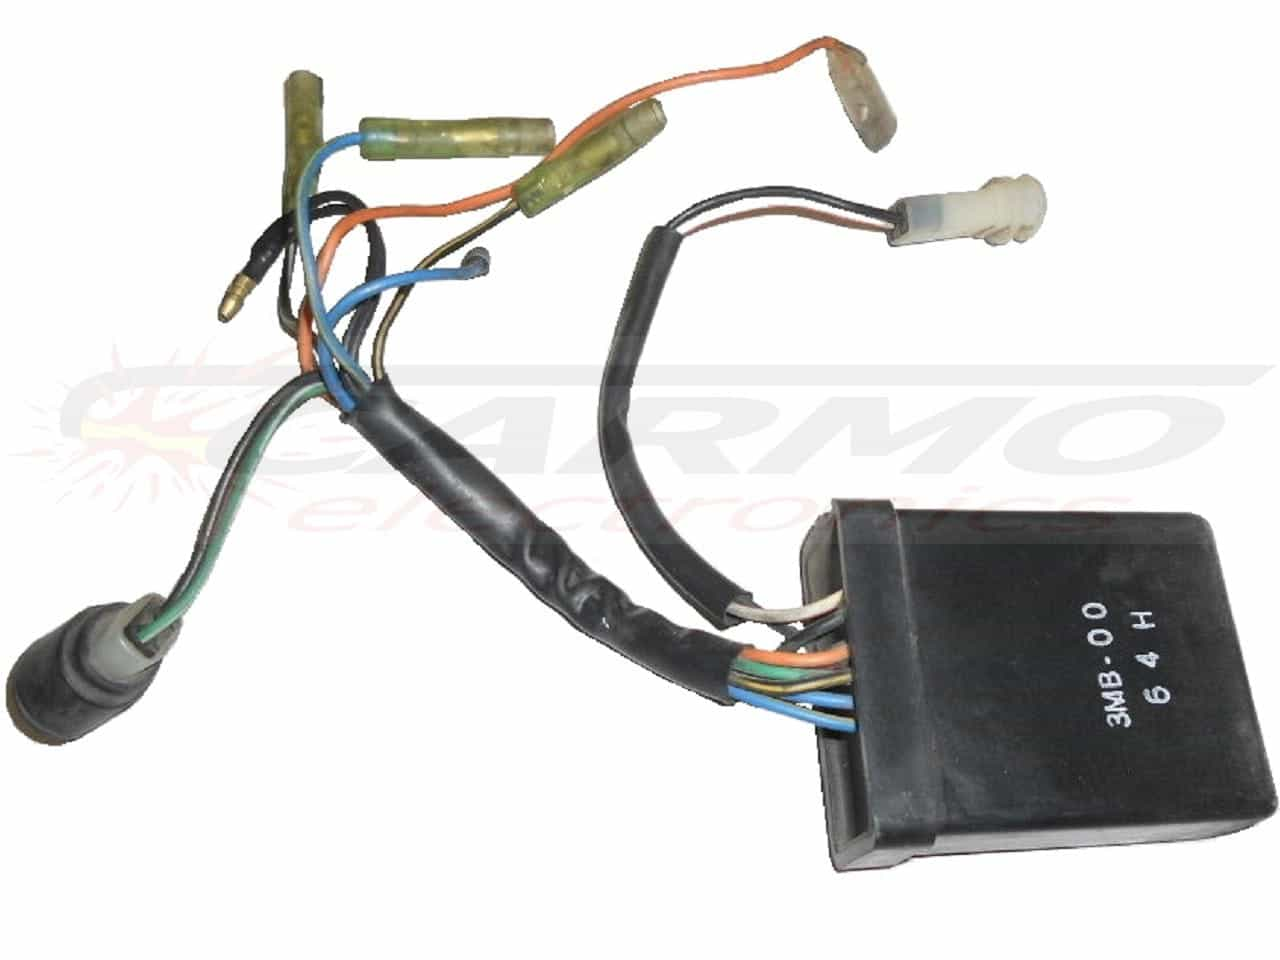 KTM-125-LC2-CDI-ignition-box-in-3MB-00 Yamaha Moto Wiring Diagram on yamaha warrior 350 wiring, yamaha wolverine 350 wiring, yamaha atv 350 wiring, yamaha xt 350 wiring,